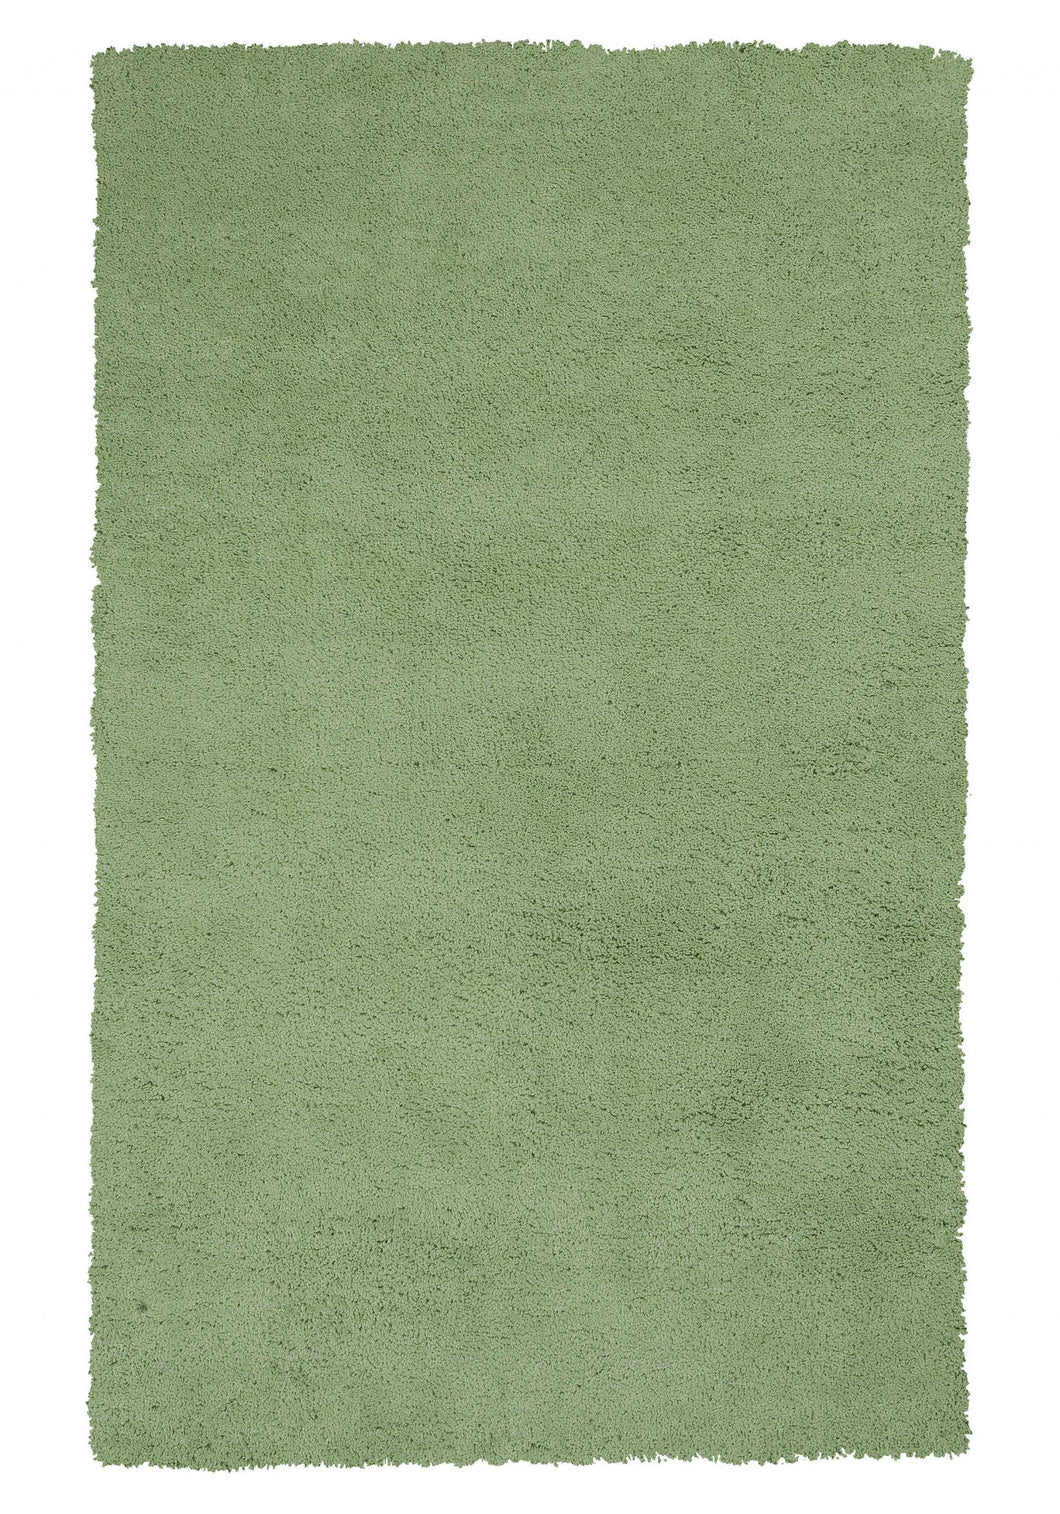 3' x 5' Polyester Spearmint Green Area Rug